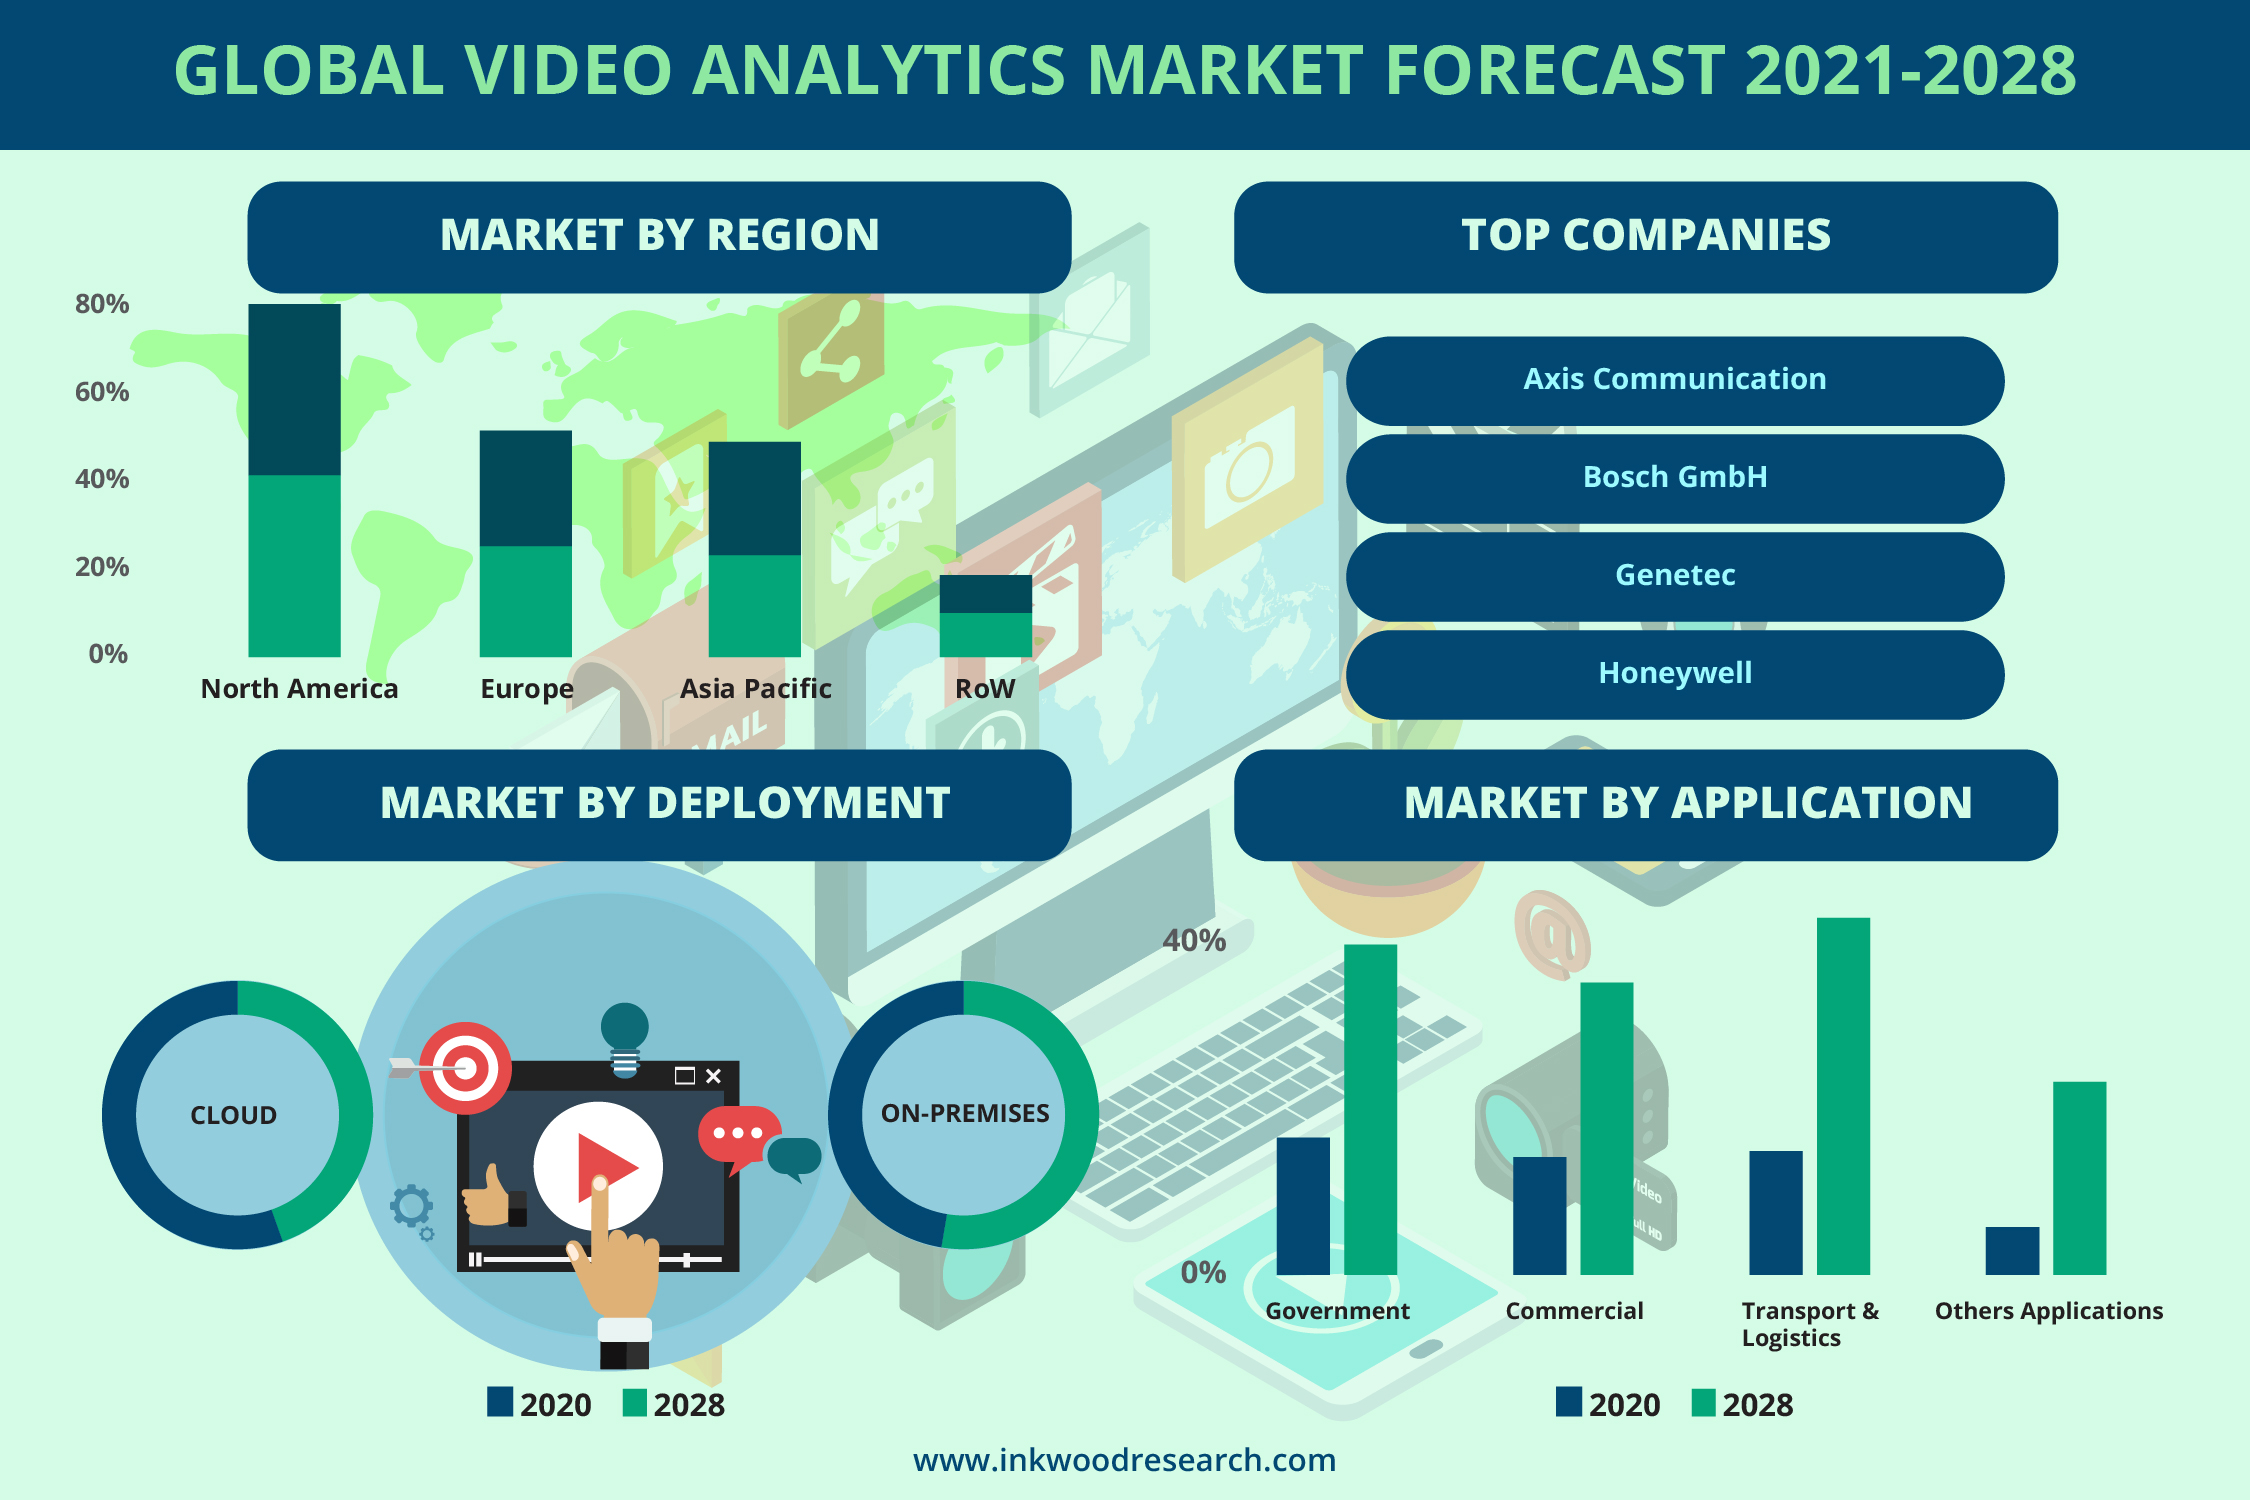 Rise in Smart Cities to Augment the Demand for Video Analytics in the Global Market